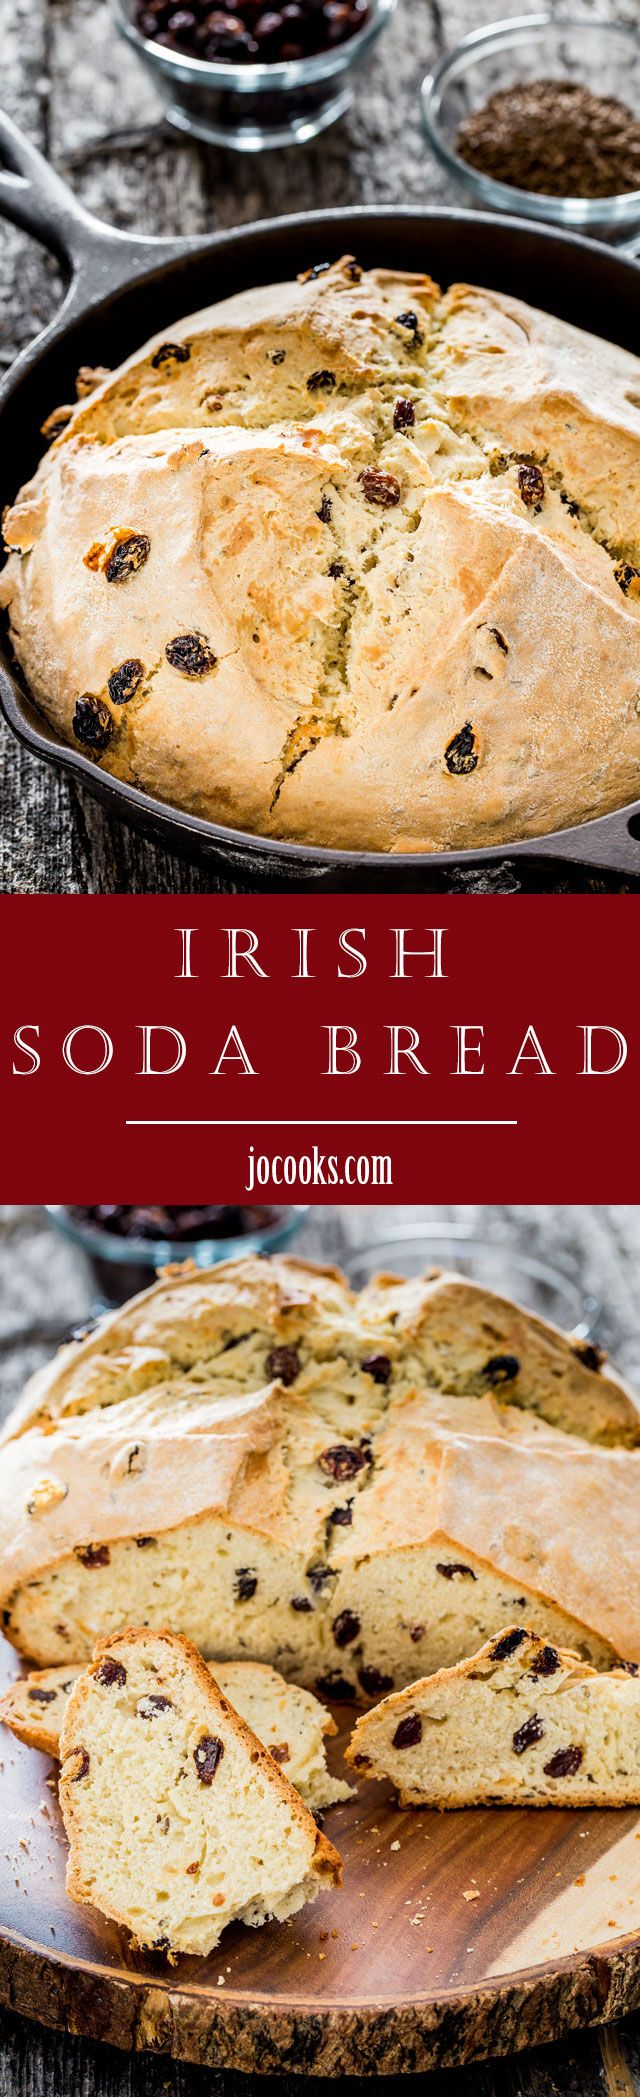 Skillet Irish Soda Bread - a rustic, and mildly sweet quick bread with raisins and caraway seeds that is easy and super quick to put together, then baked in a skillet.